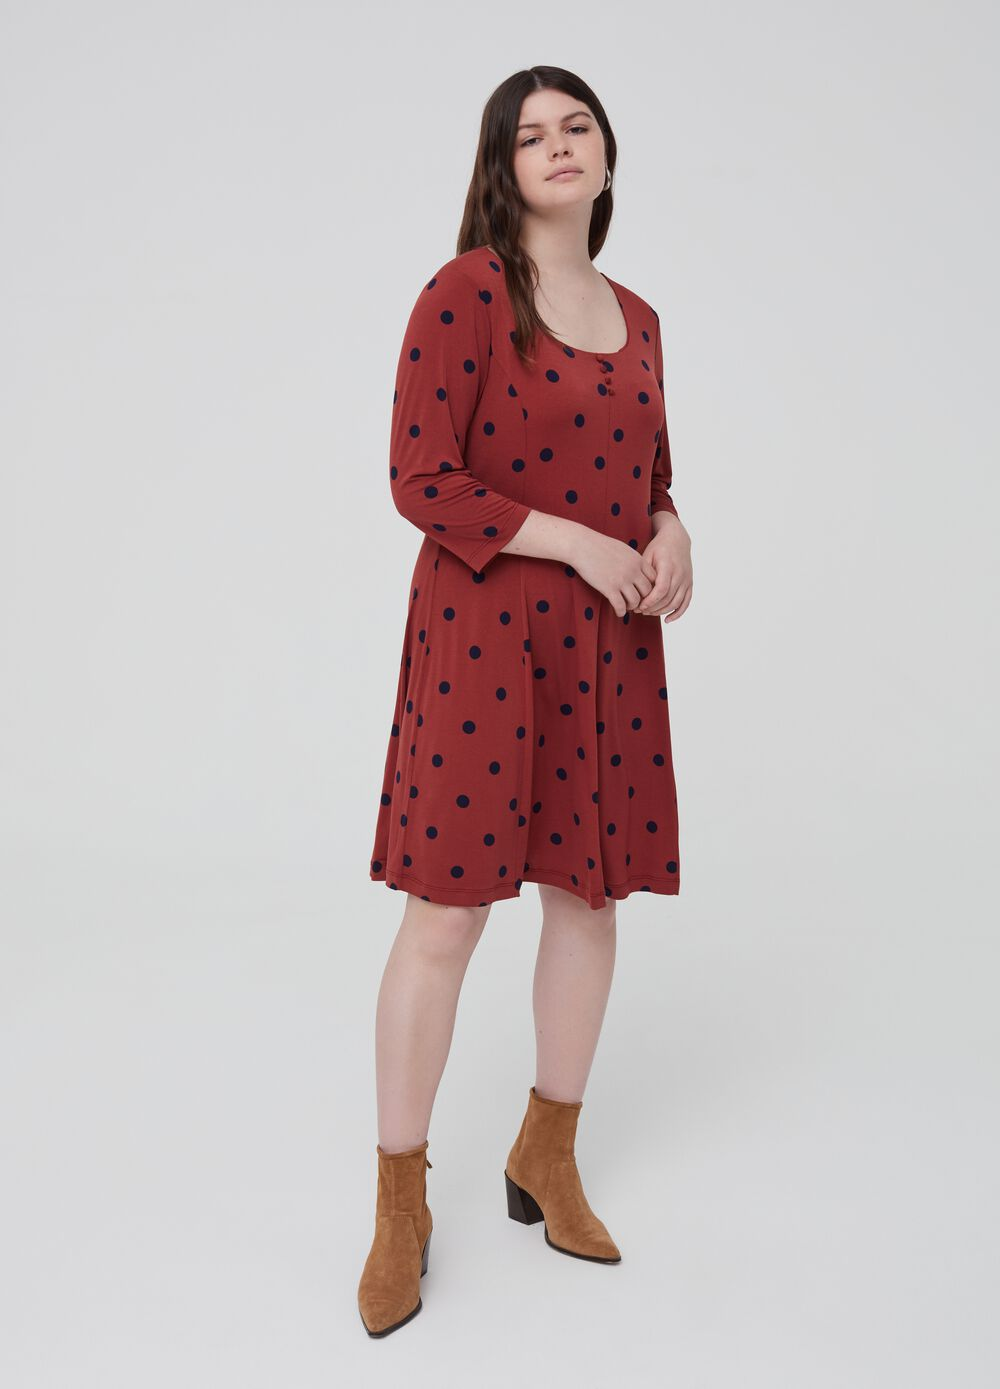 Curvy stretch polka dot dress